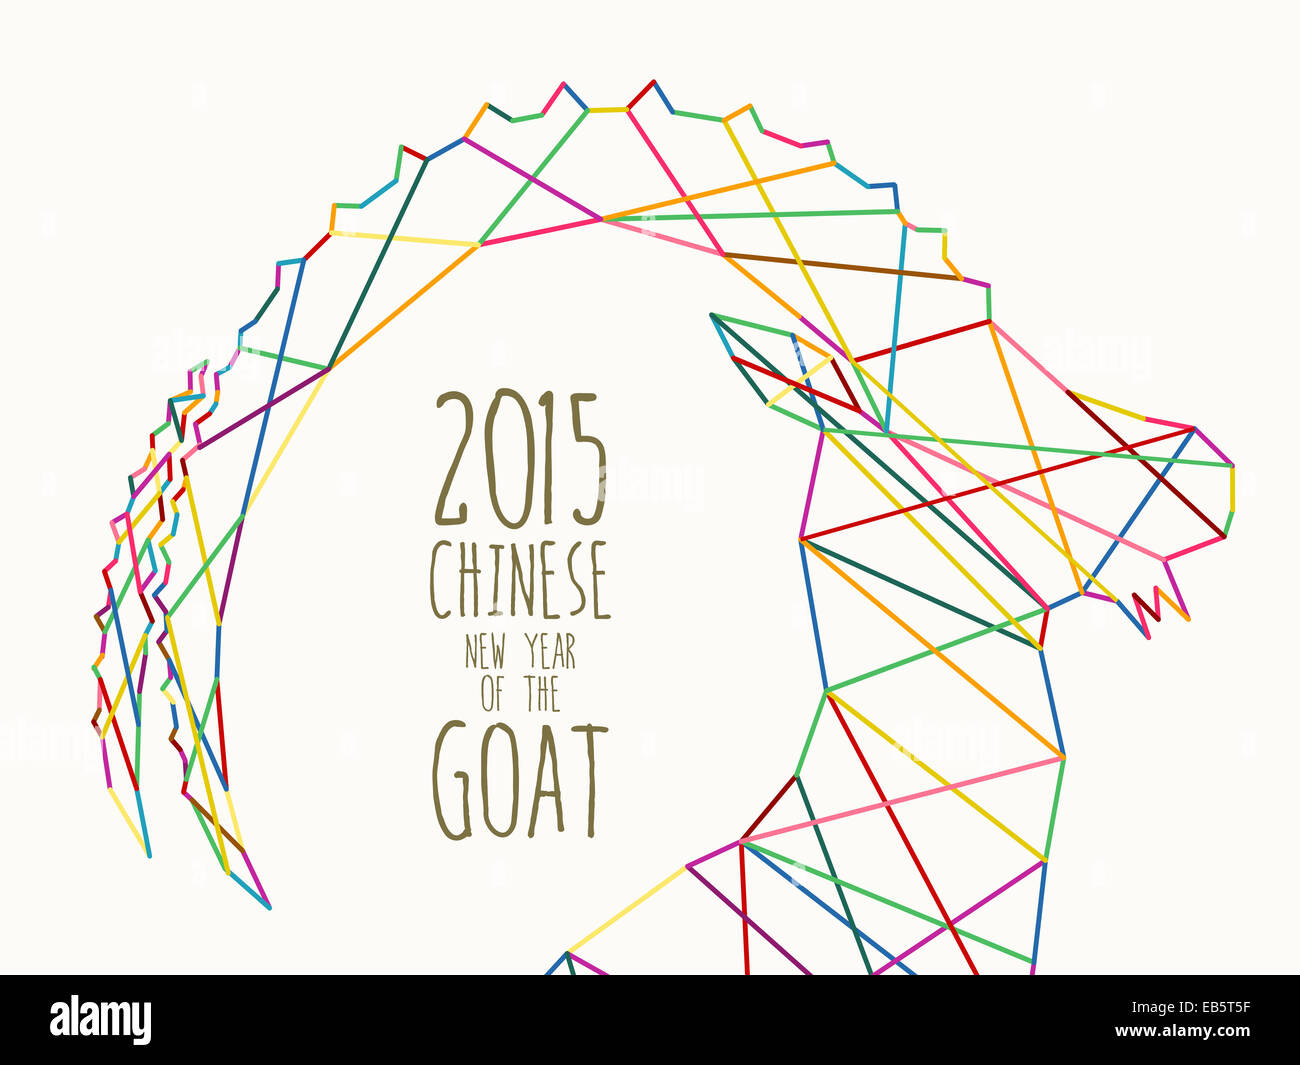 Chinese New Year of the Goat 2015 illustration with colorful lines triangle silhouette composition and hand written - Stock Image